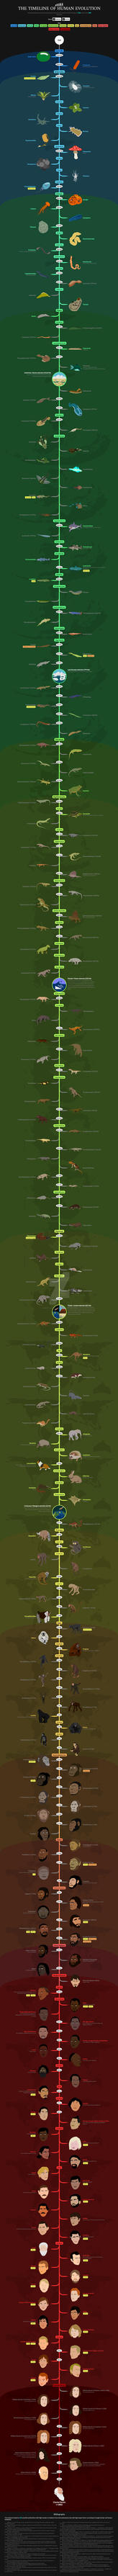 The timeline of human evolution by ChristianSpreafico